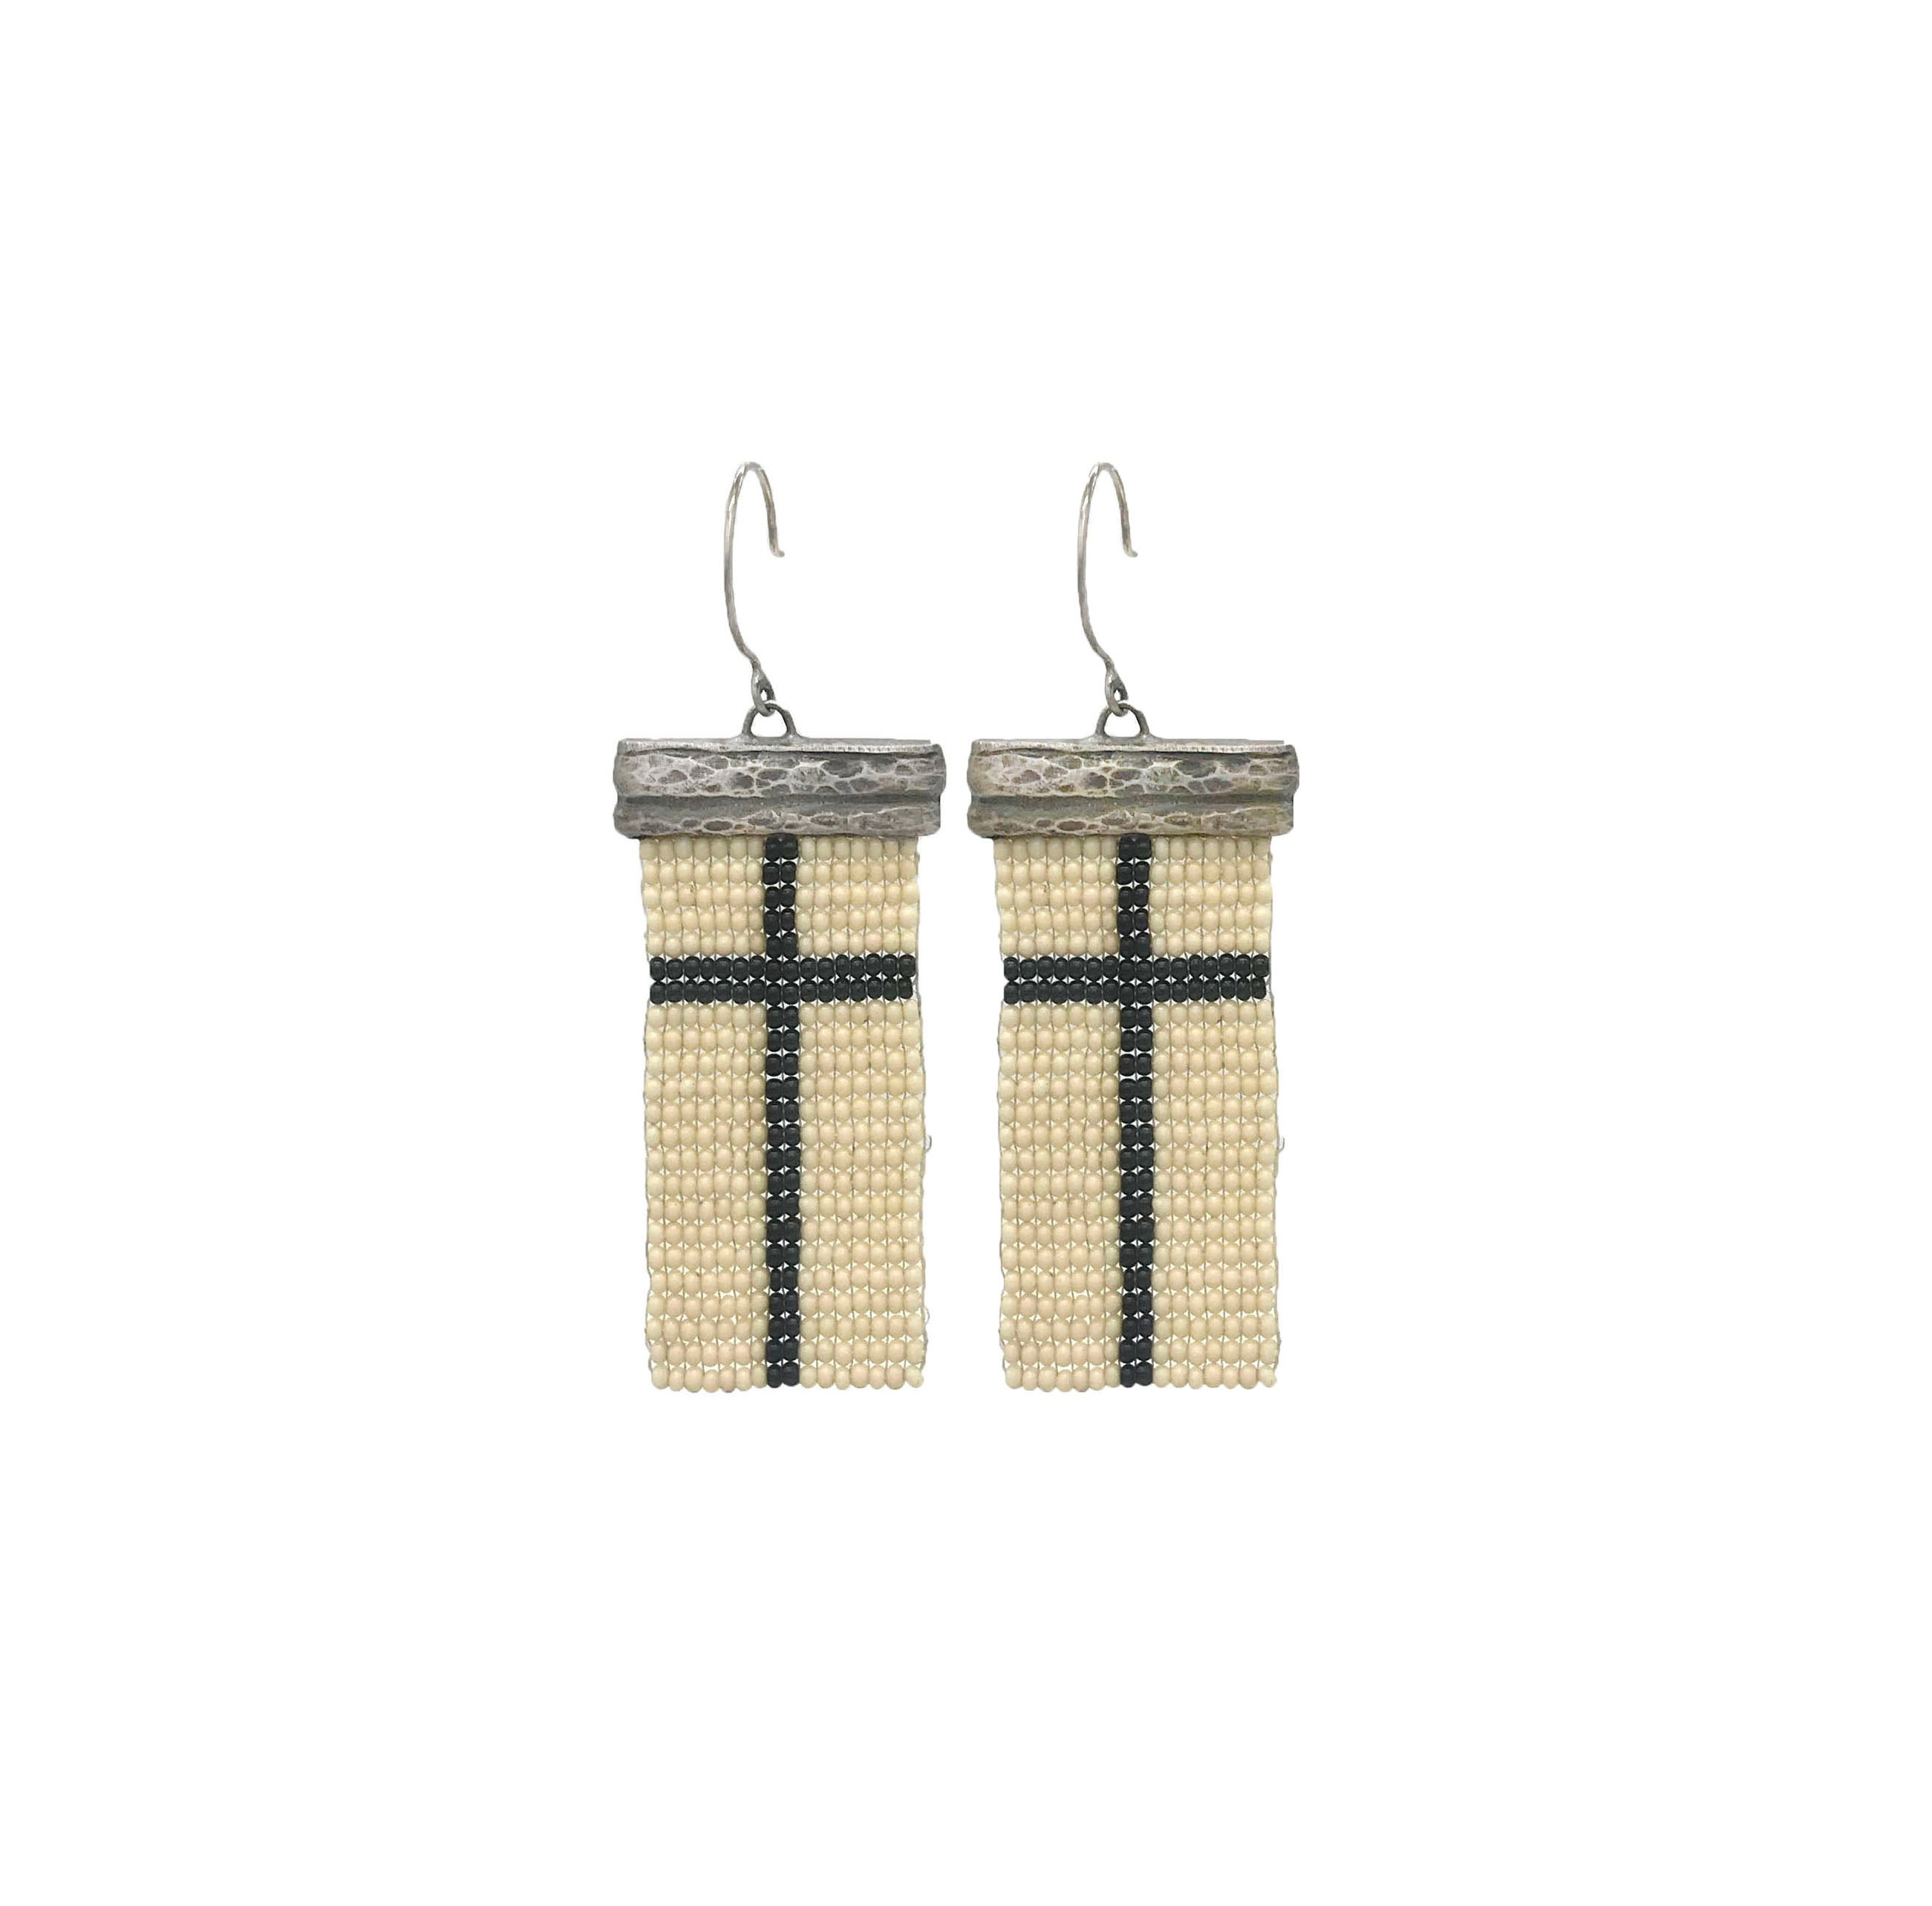 Loomed Black Cross Earrings